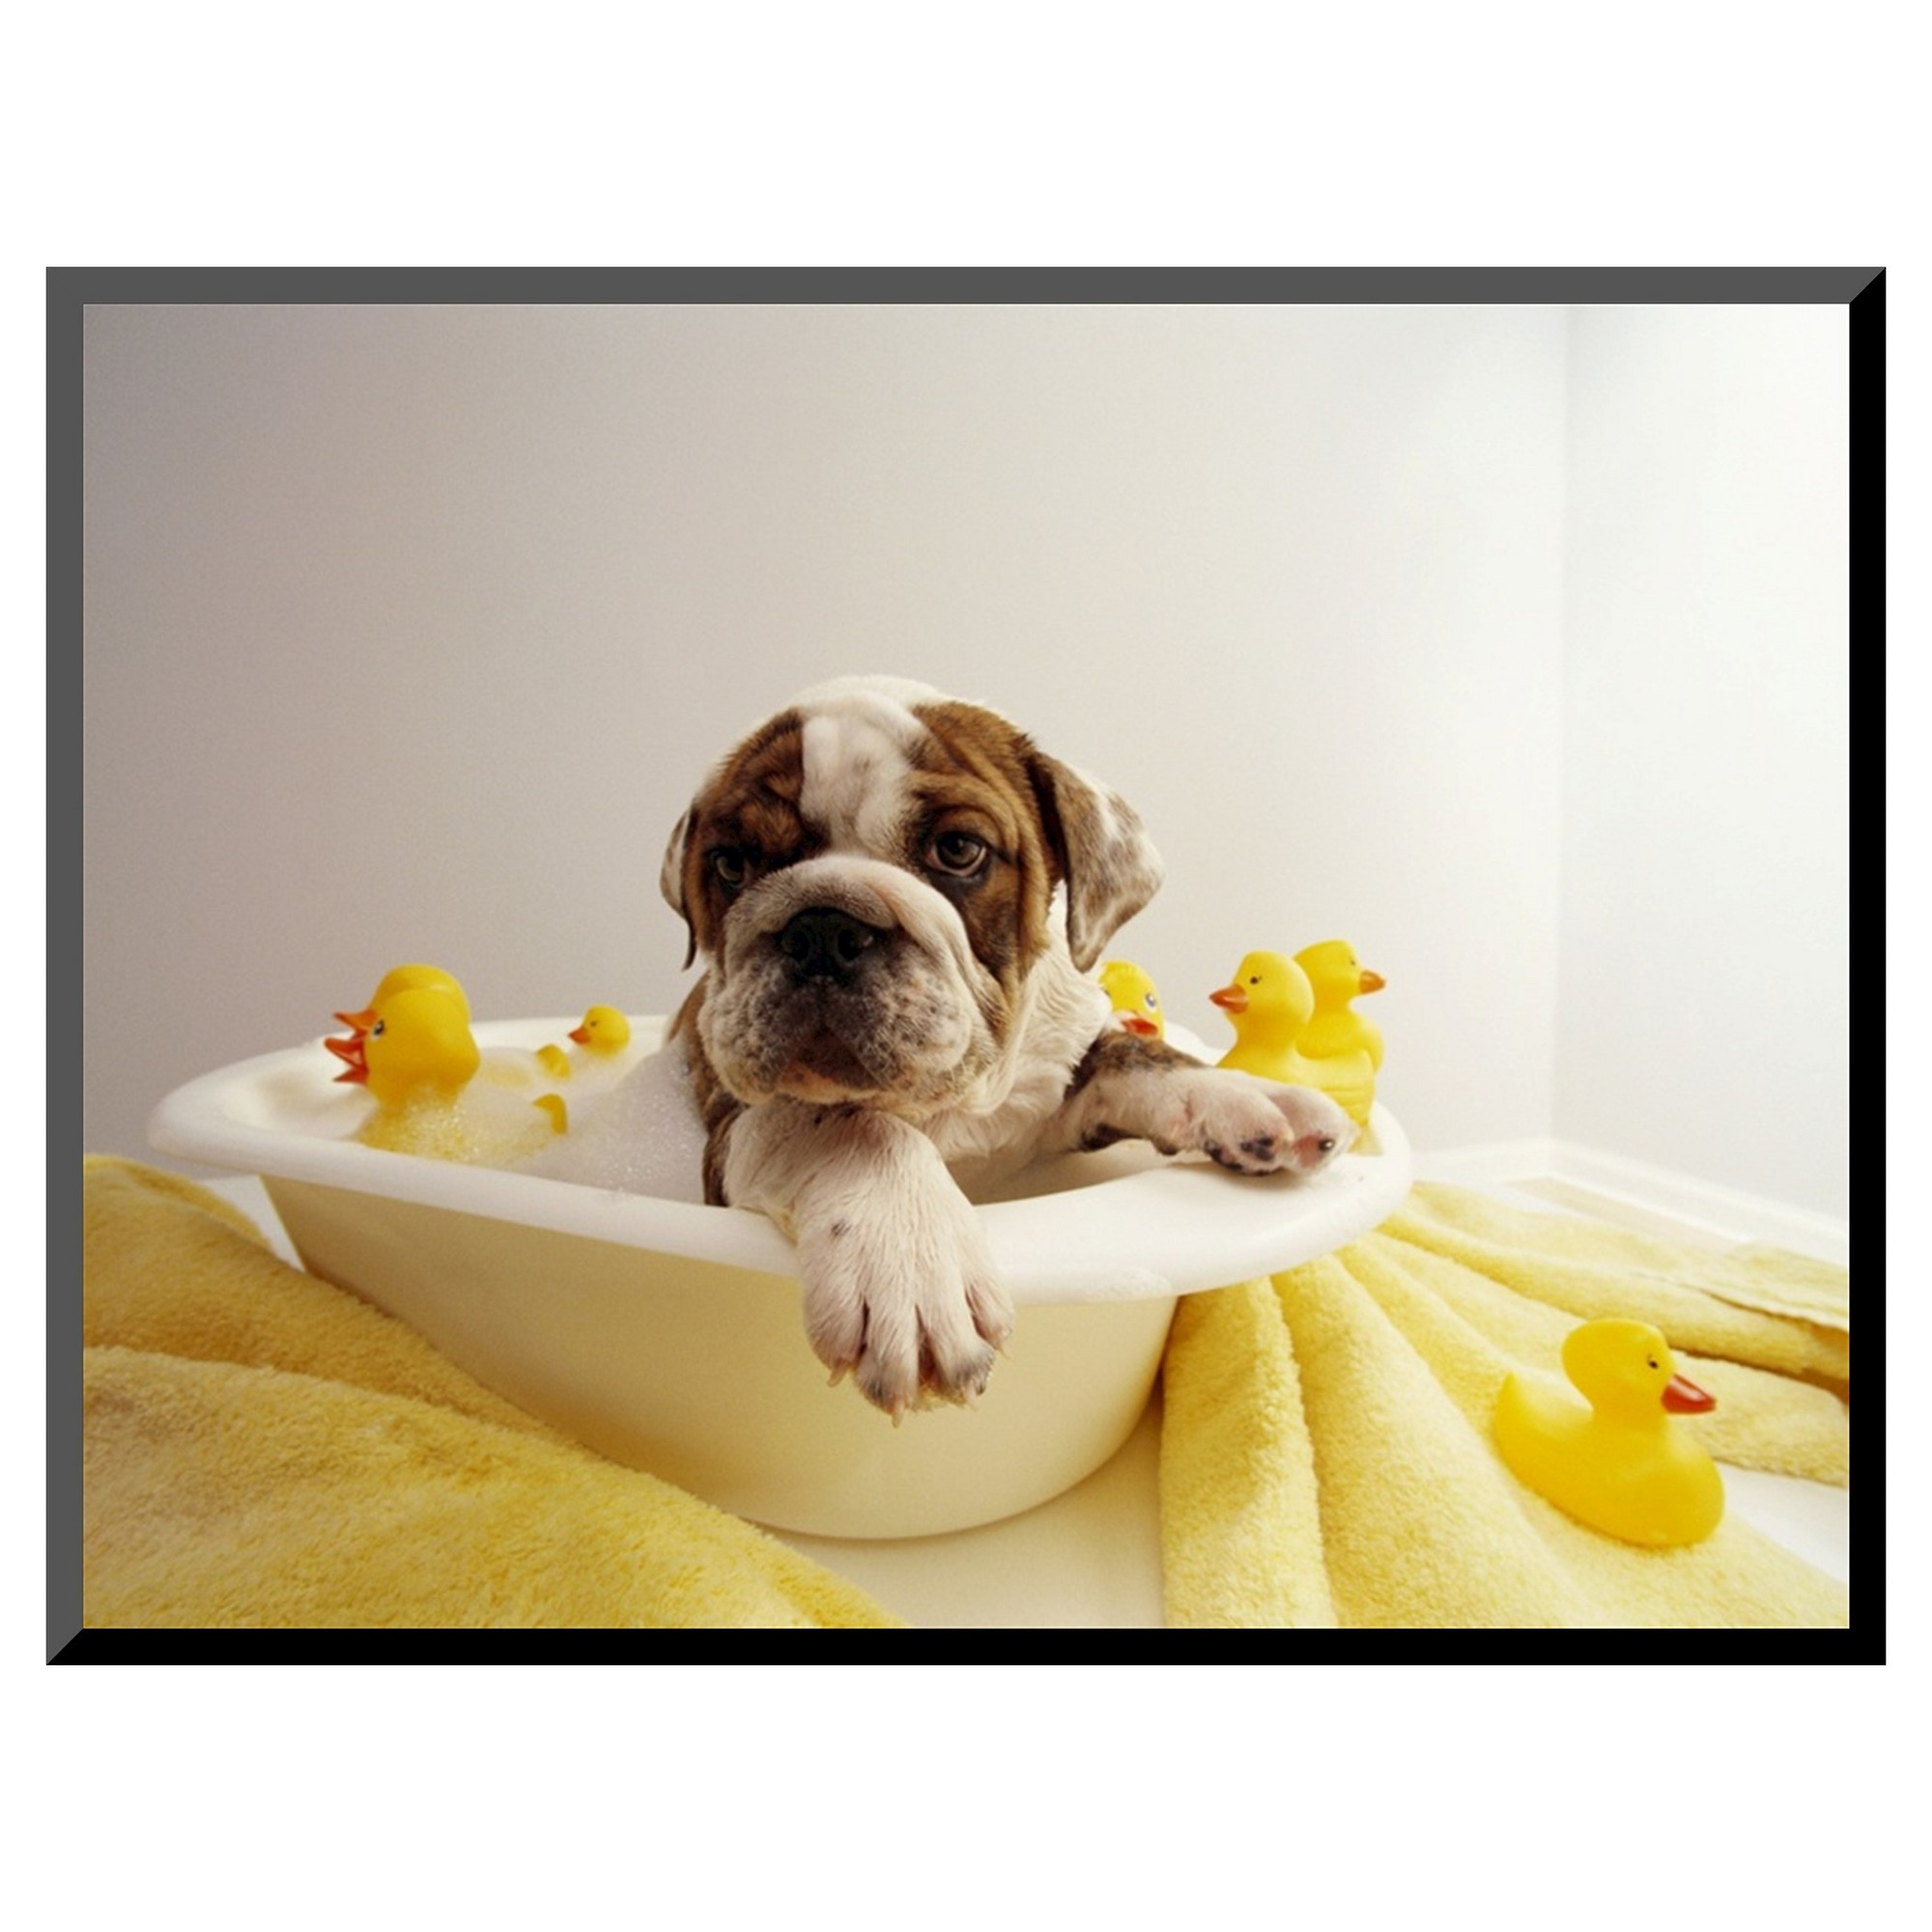 Art Com Bulldog Puppy In Miniature Bathtub Bulldog Puppies Pets